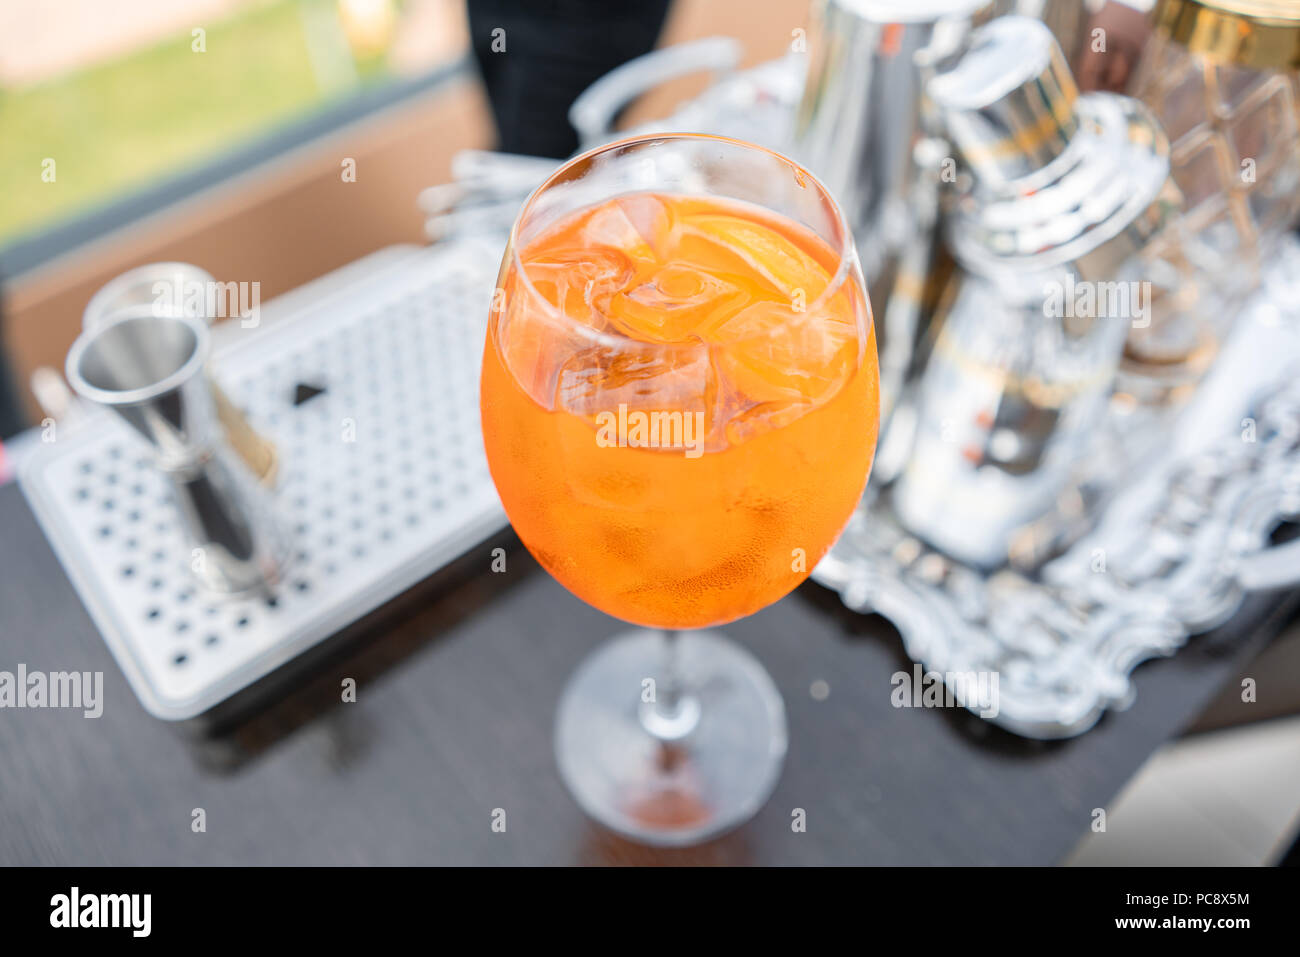 Aperol spritz cocktail in misted glass, selective focus. Alcoholic beverage based on bar counter with ice cubes and oranges. metal shakers in the background - Stock Image